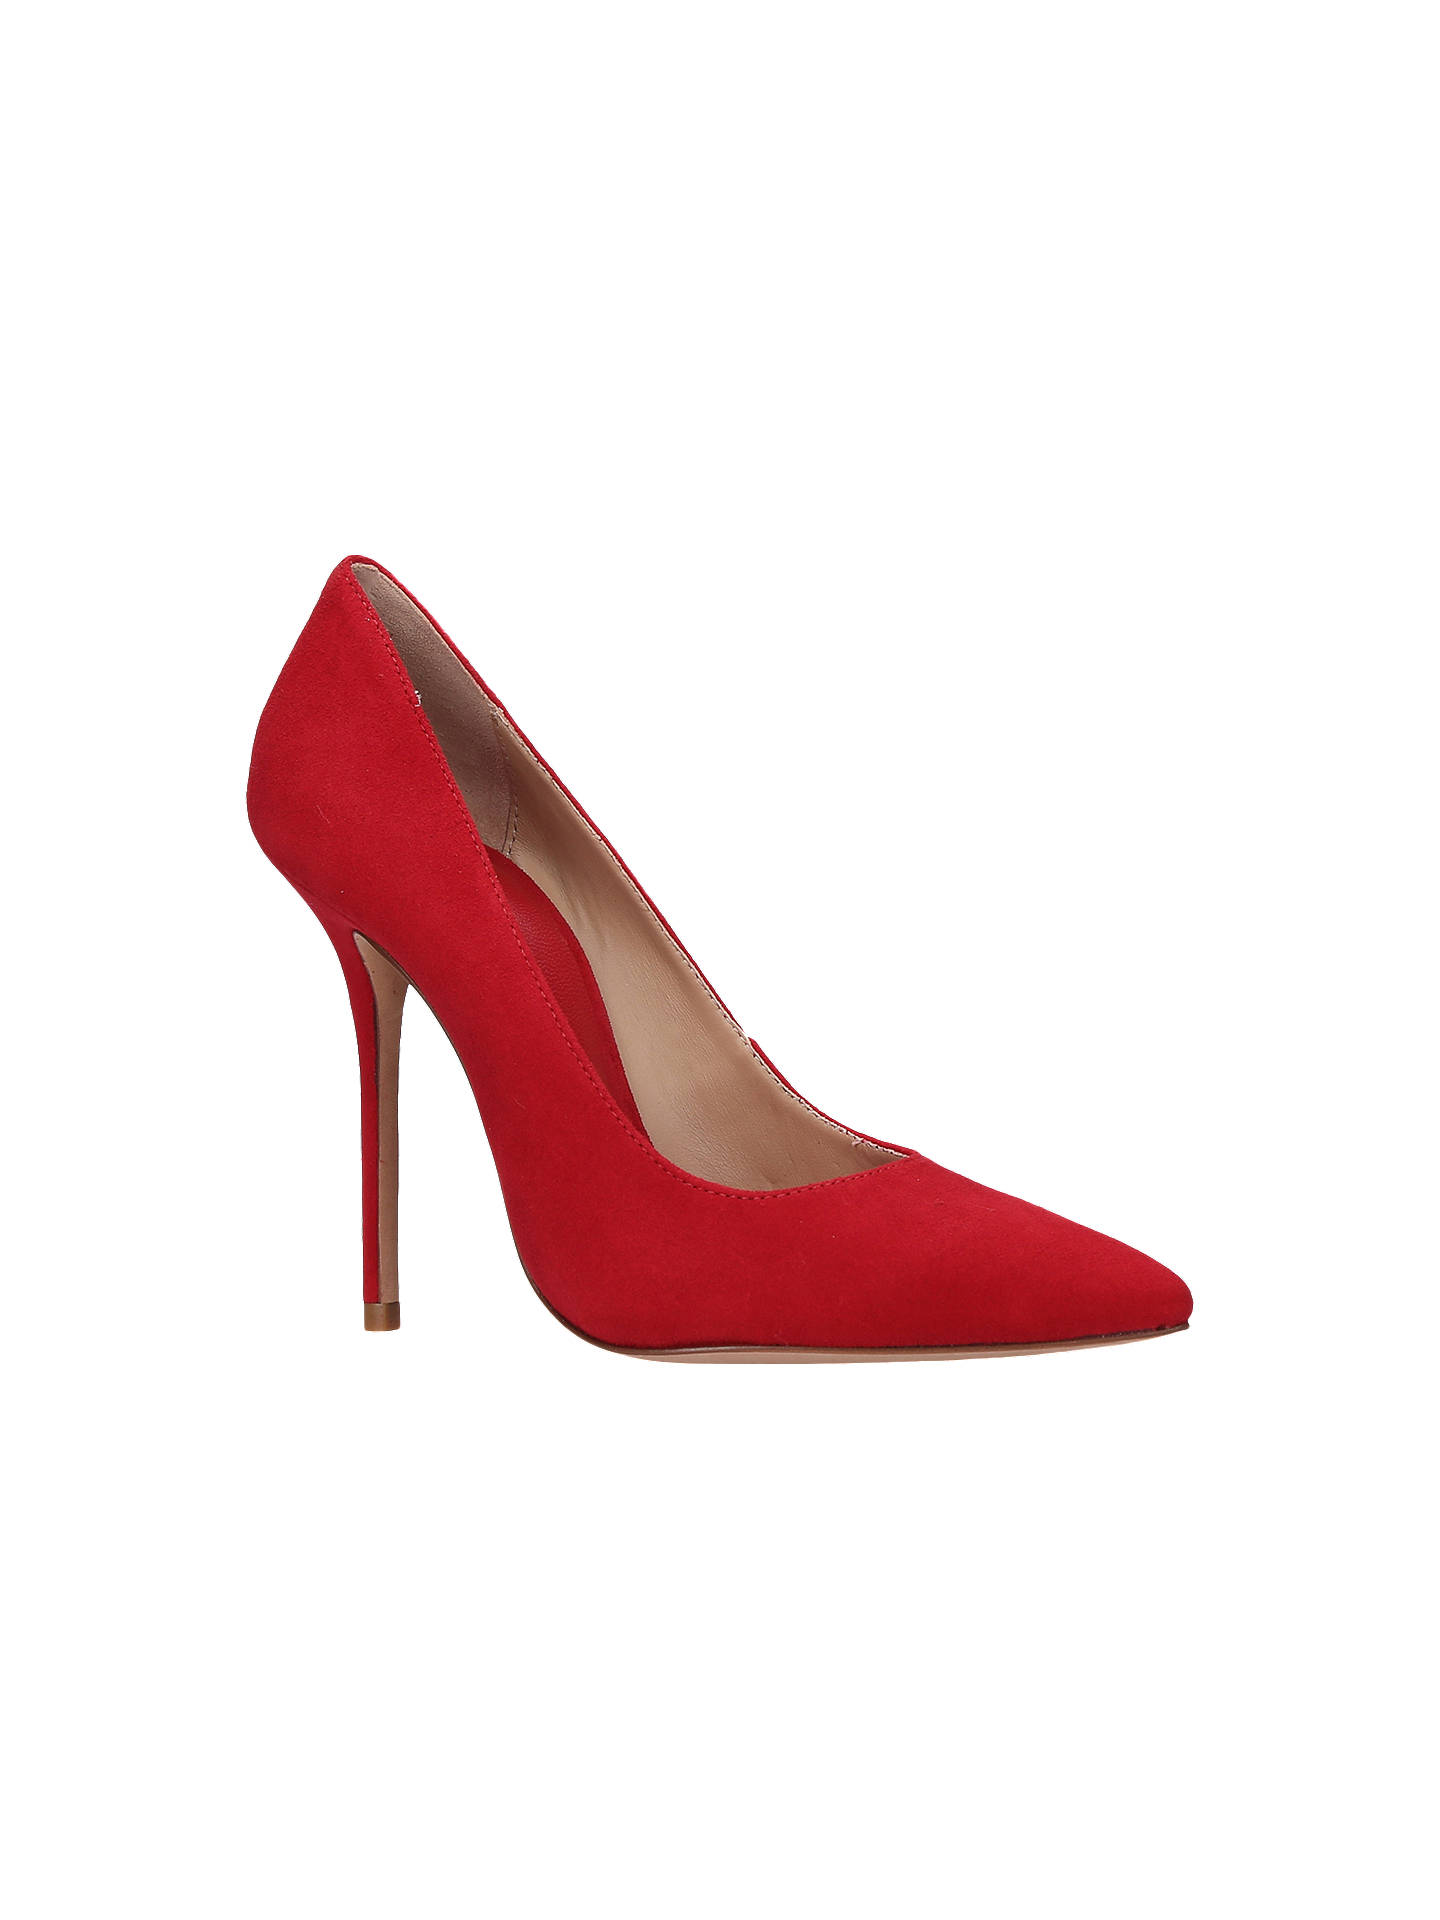 BuyKurt Geiger Ellen High Heel Court Shoes, Red, 5 Online at johnlewis.com